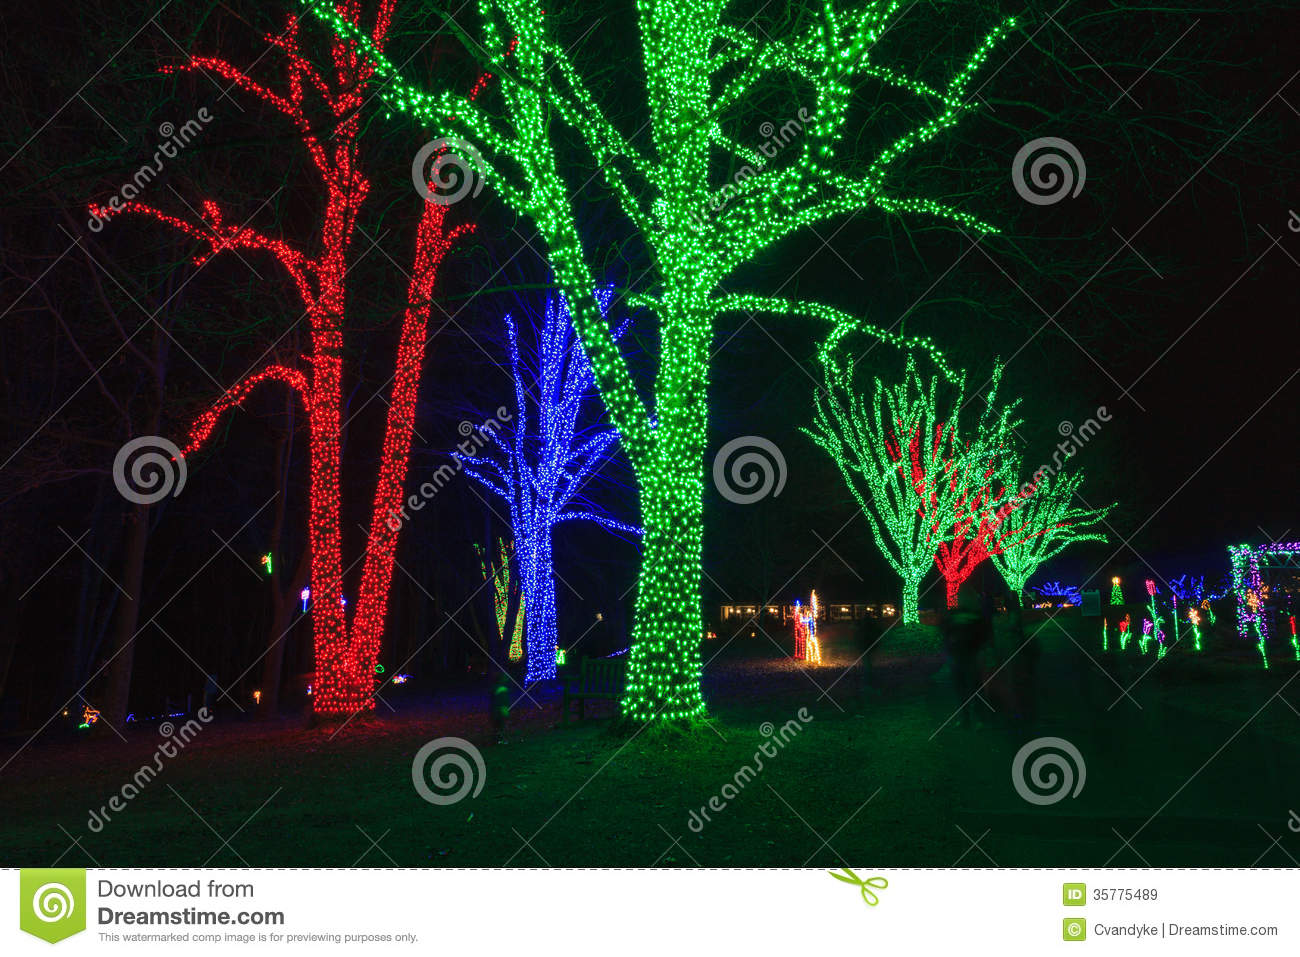 Virginia Holiday Festival Of Lights Stock Image - Image of night ...